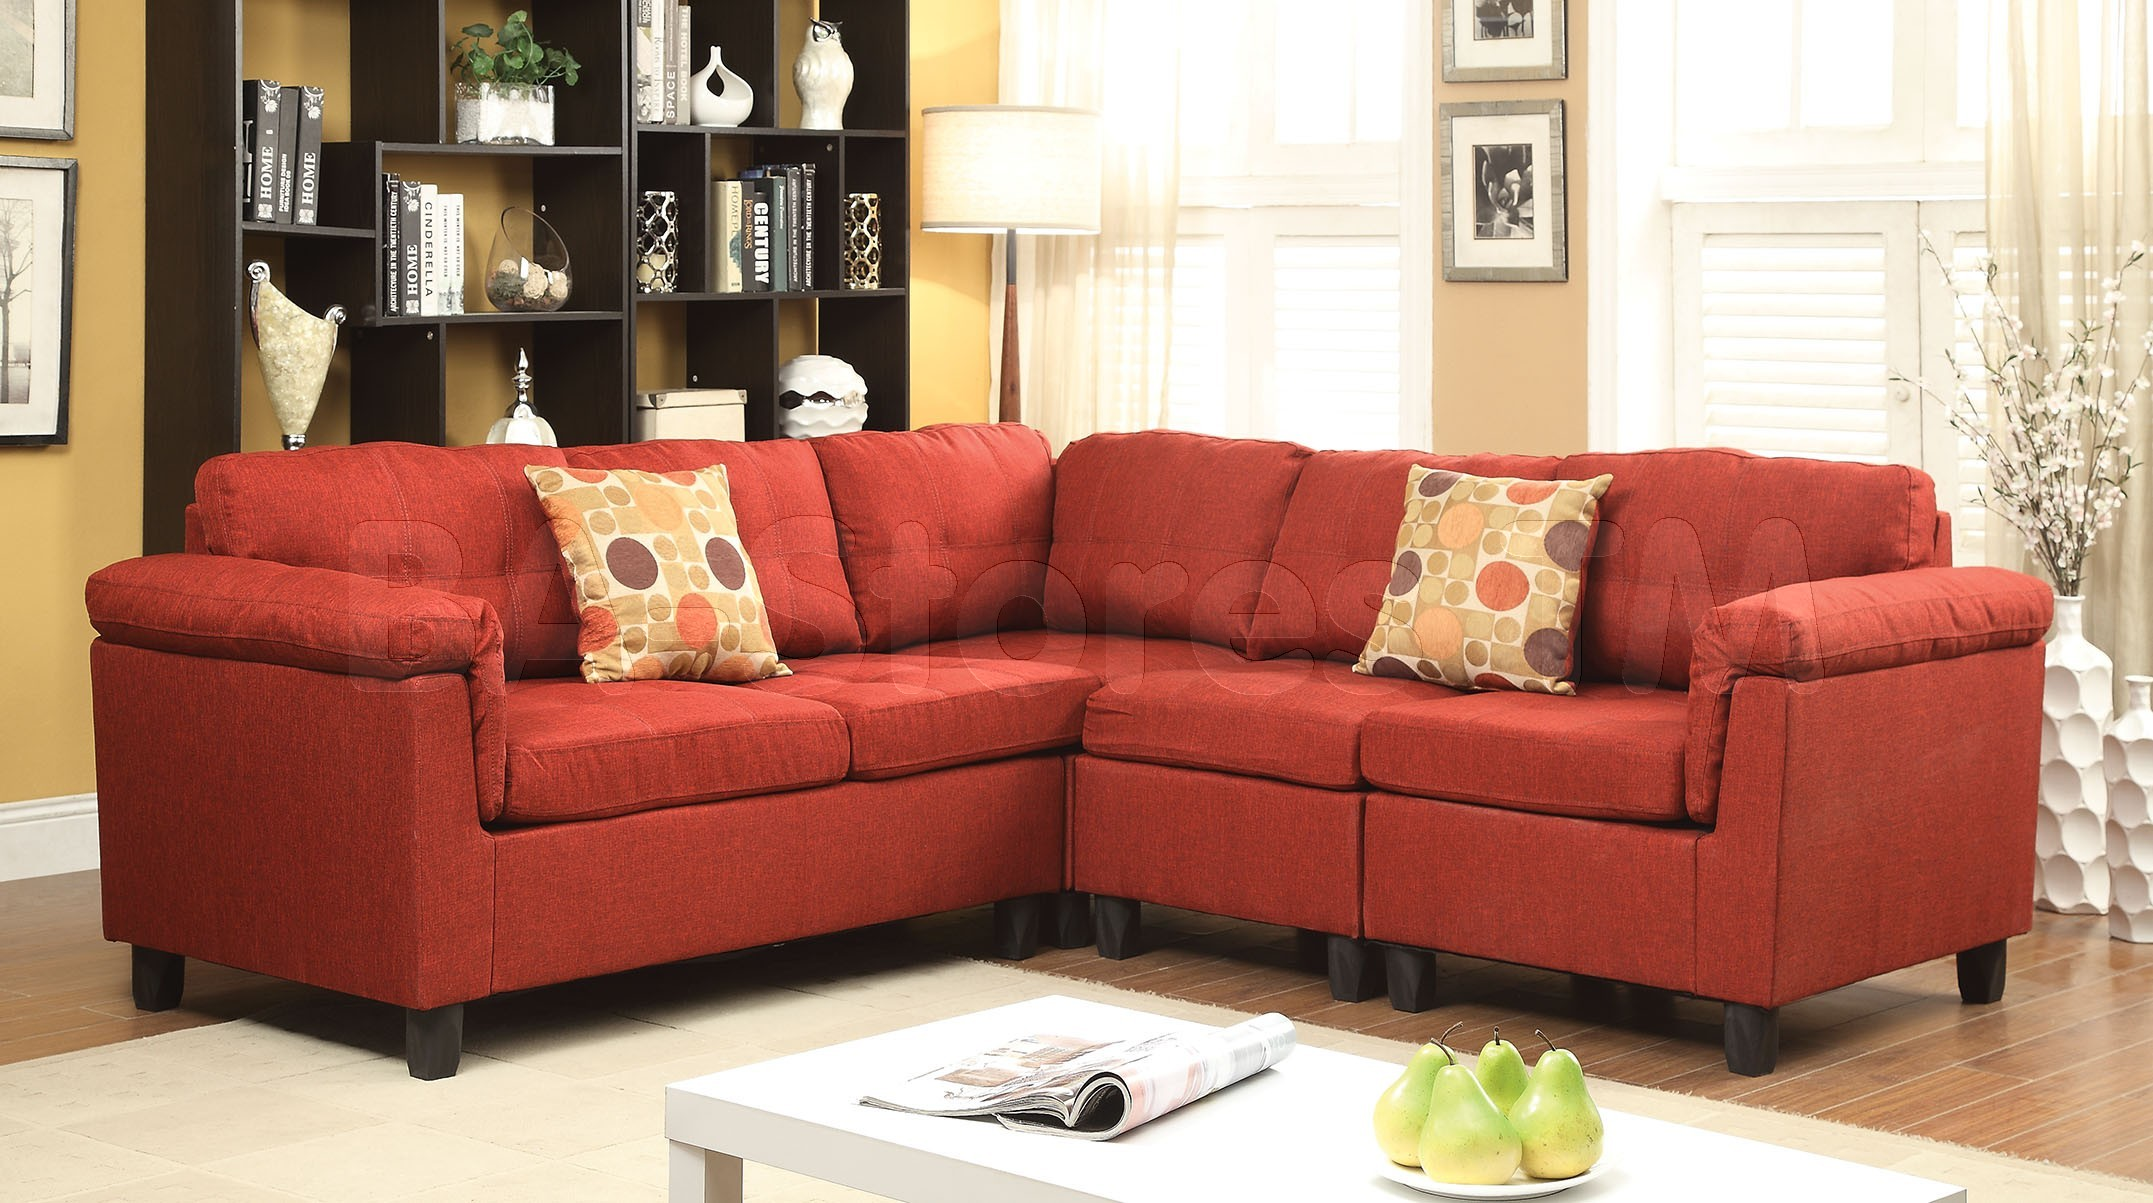 Acme Cleavon Sofa Sectional In Two Colors AIM Rental : acme furniture 51545 from aimrental.net size 2153 x 1203 jpeg 410kB